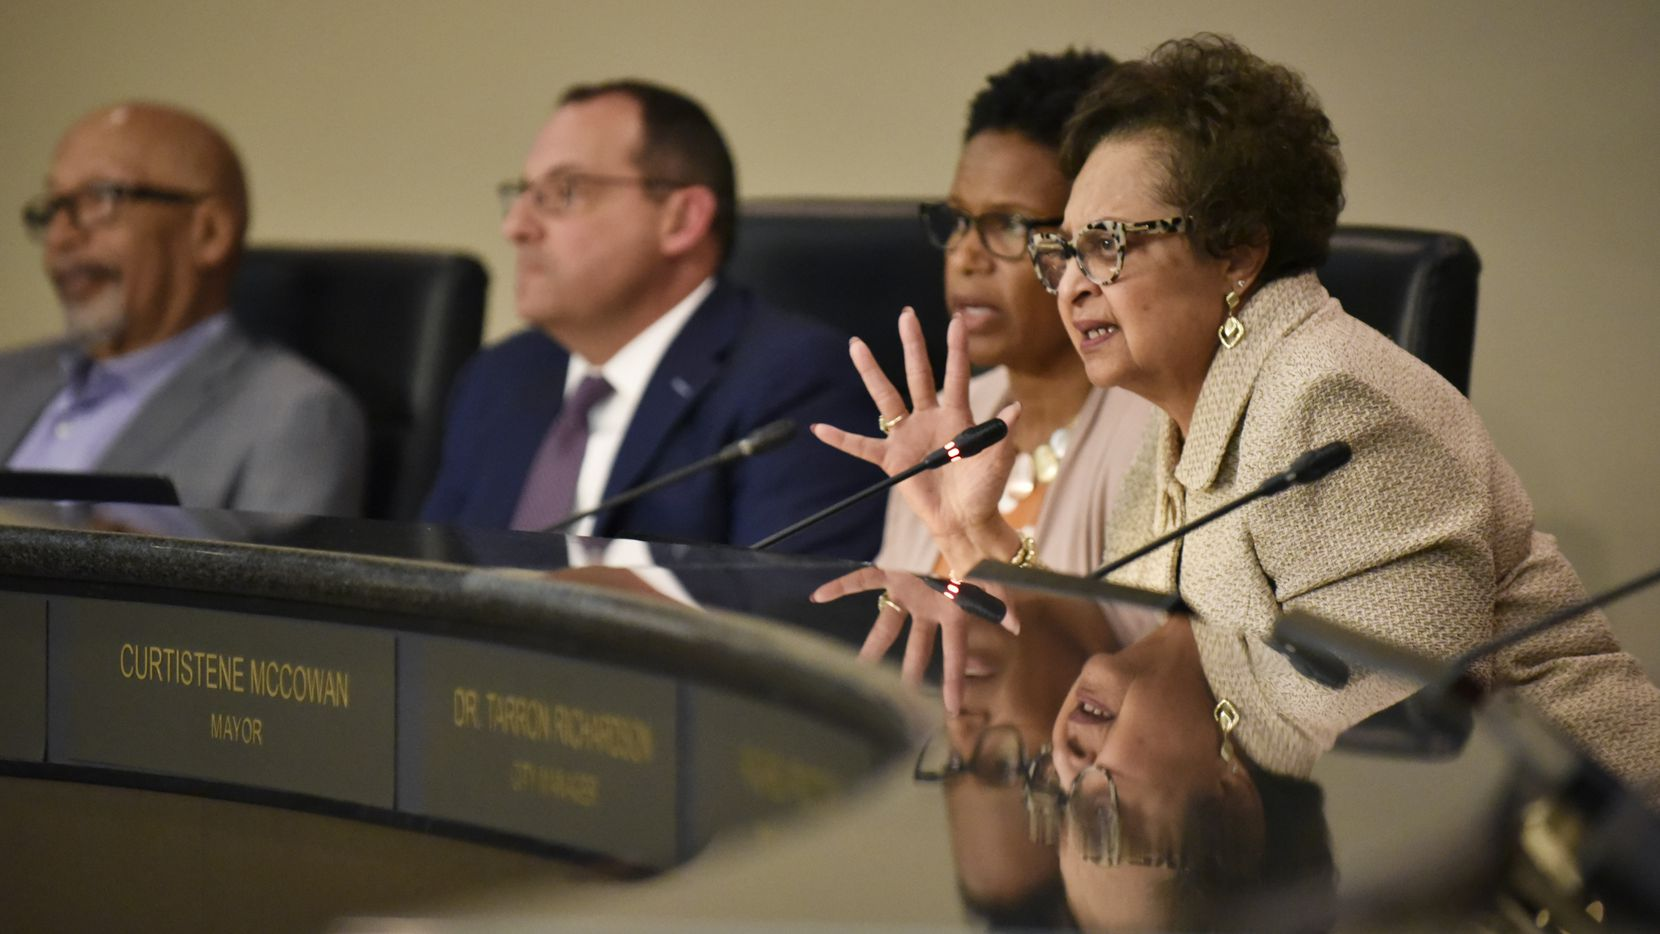 DeSoto Mayor Curtistene Smith McCowan, shown during a 2019 council meeting, announced that she is being treated for lung cancer.